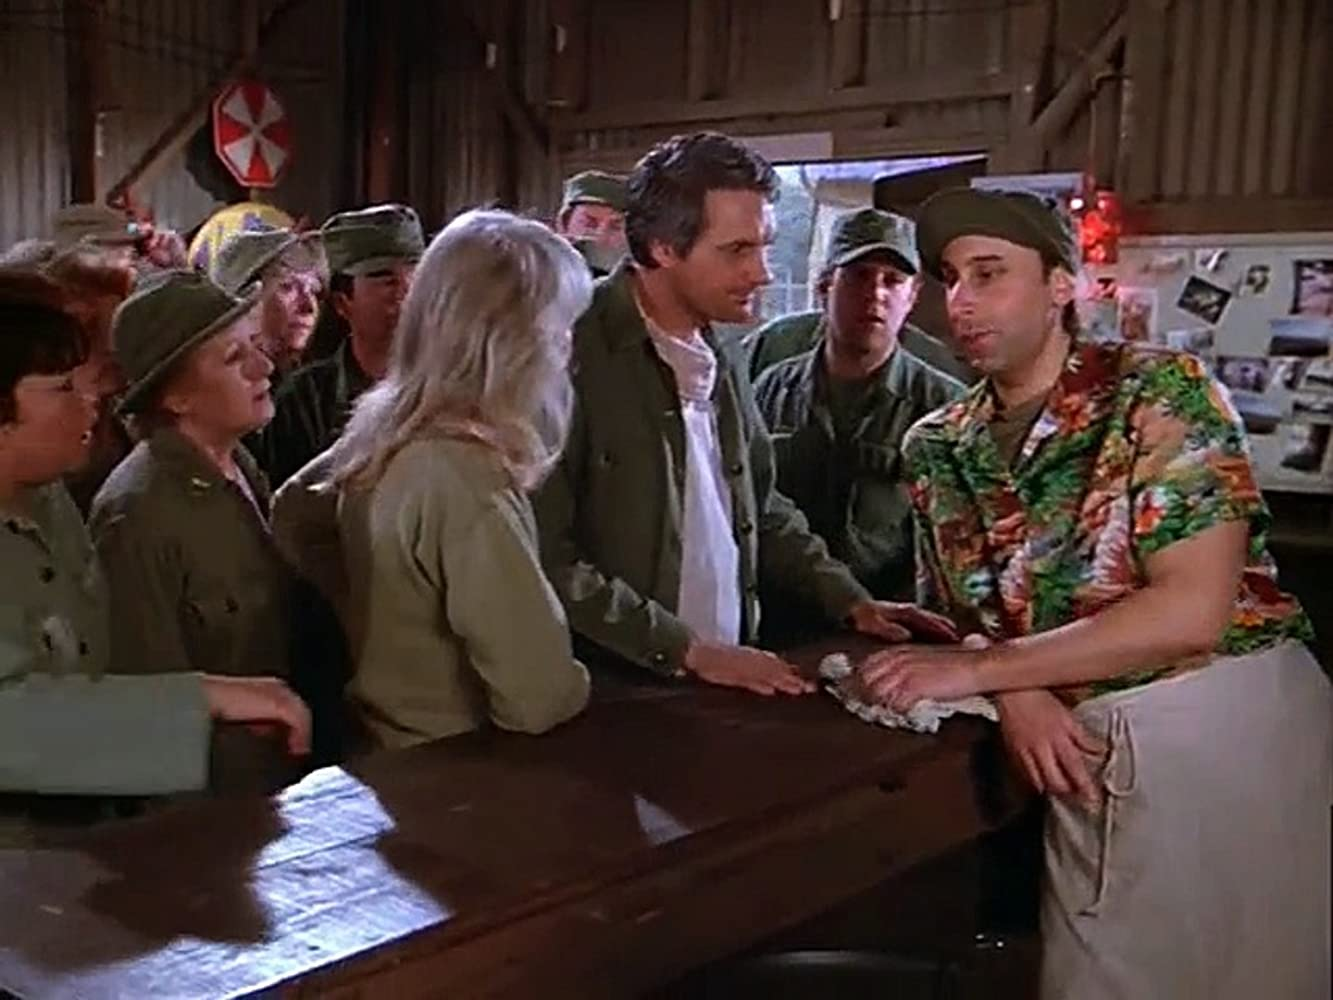 M A S H 1972 1983 Igor straminsky, a recurring character in the television series m*a*s*h. m a s h 1972 1983